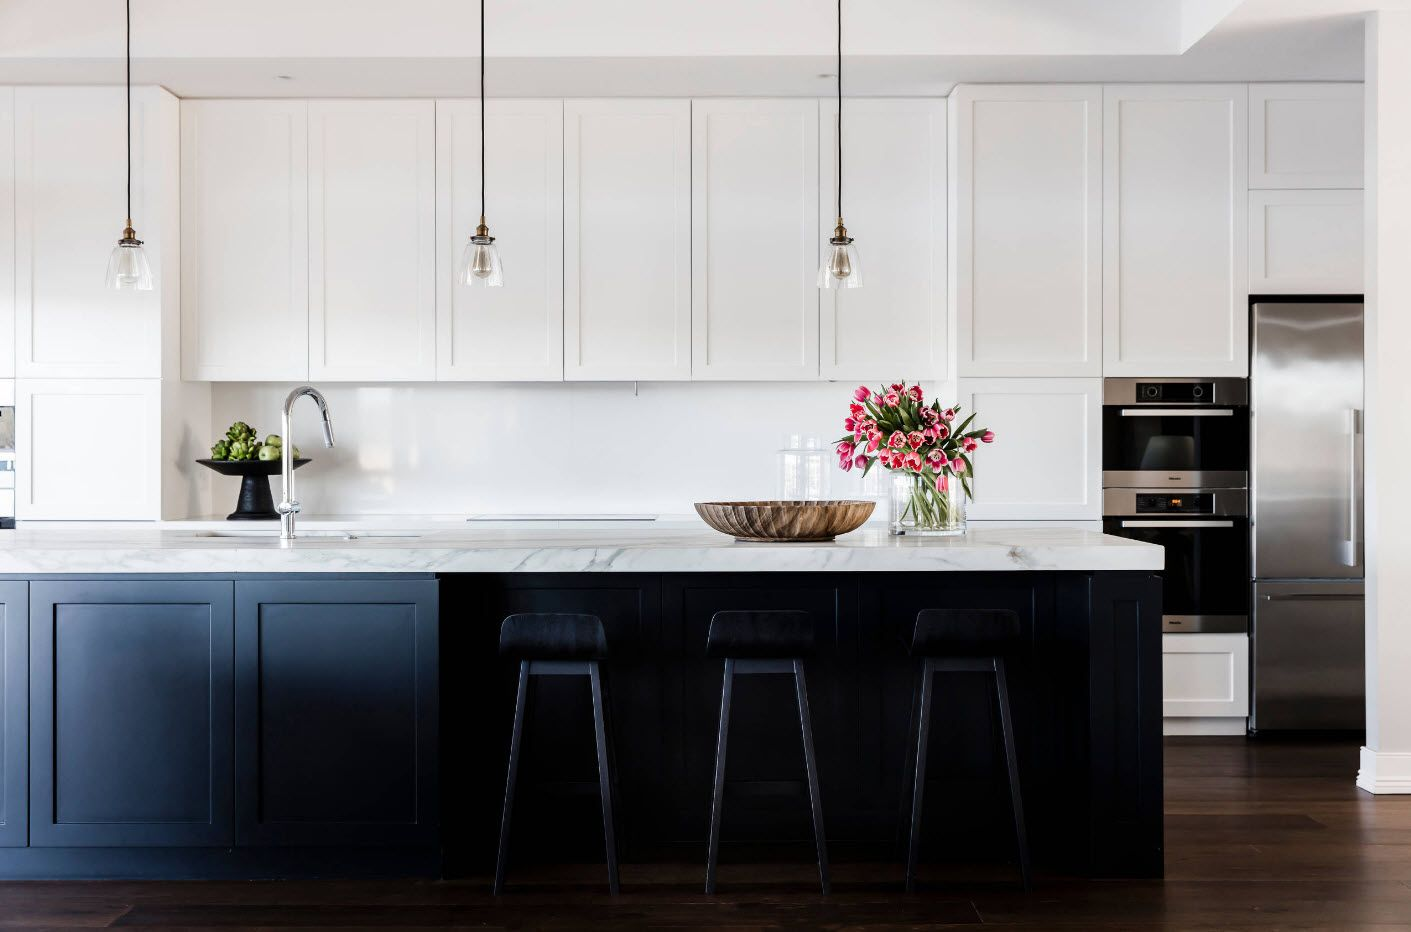 Minimalism and studding simplicity at the modern contrasting kitchen